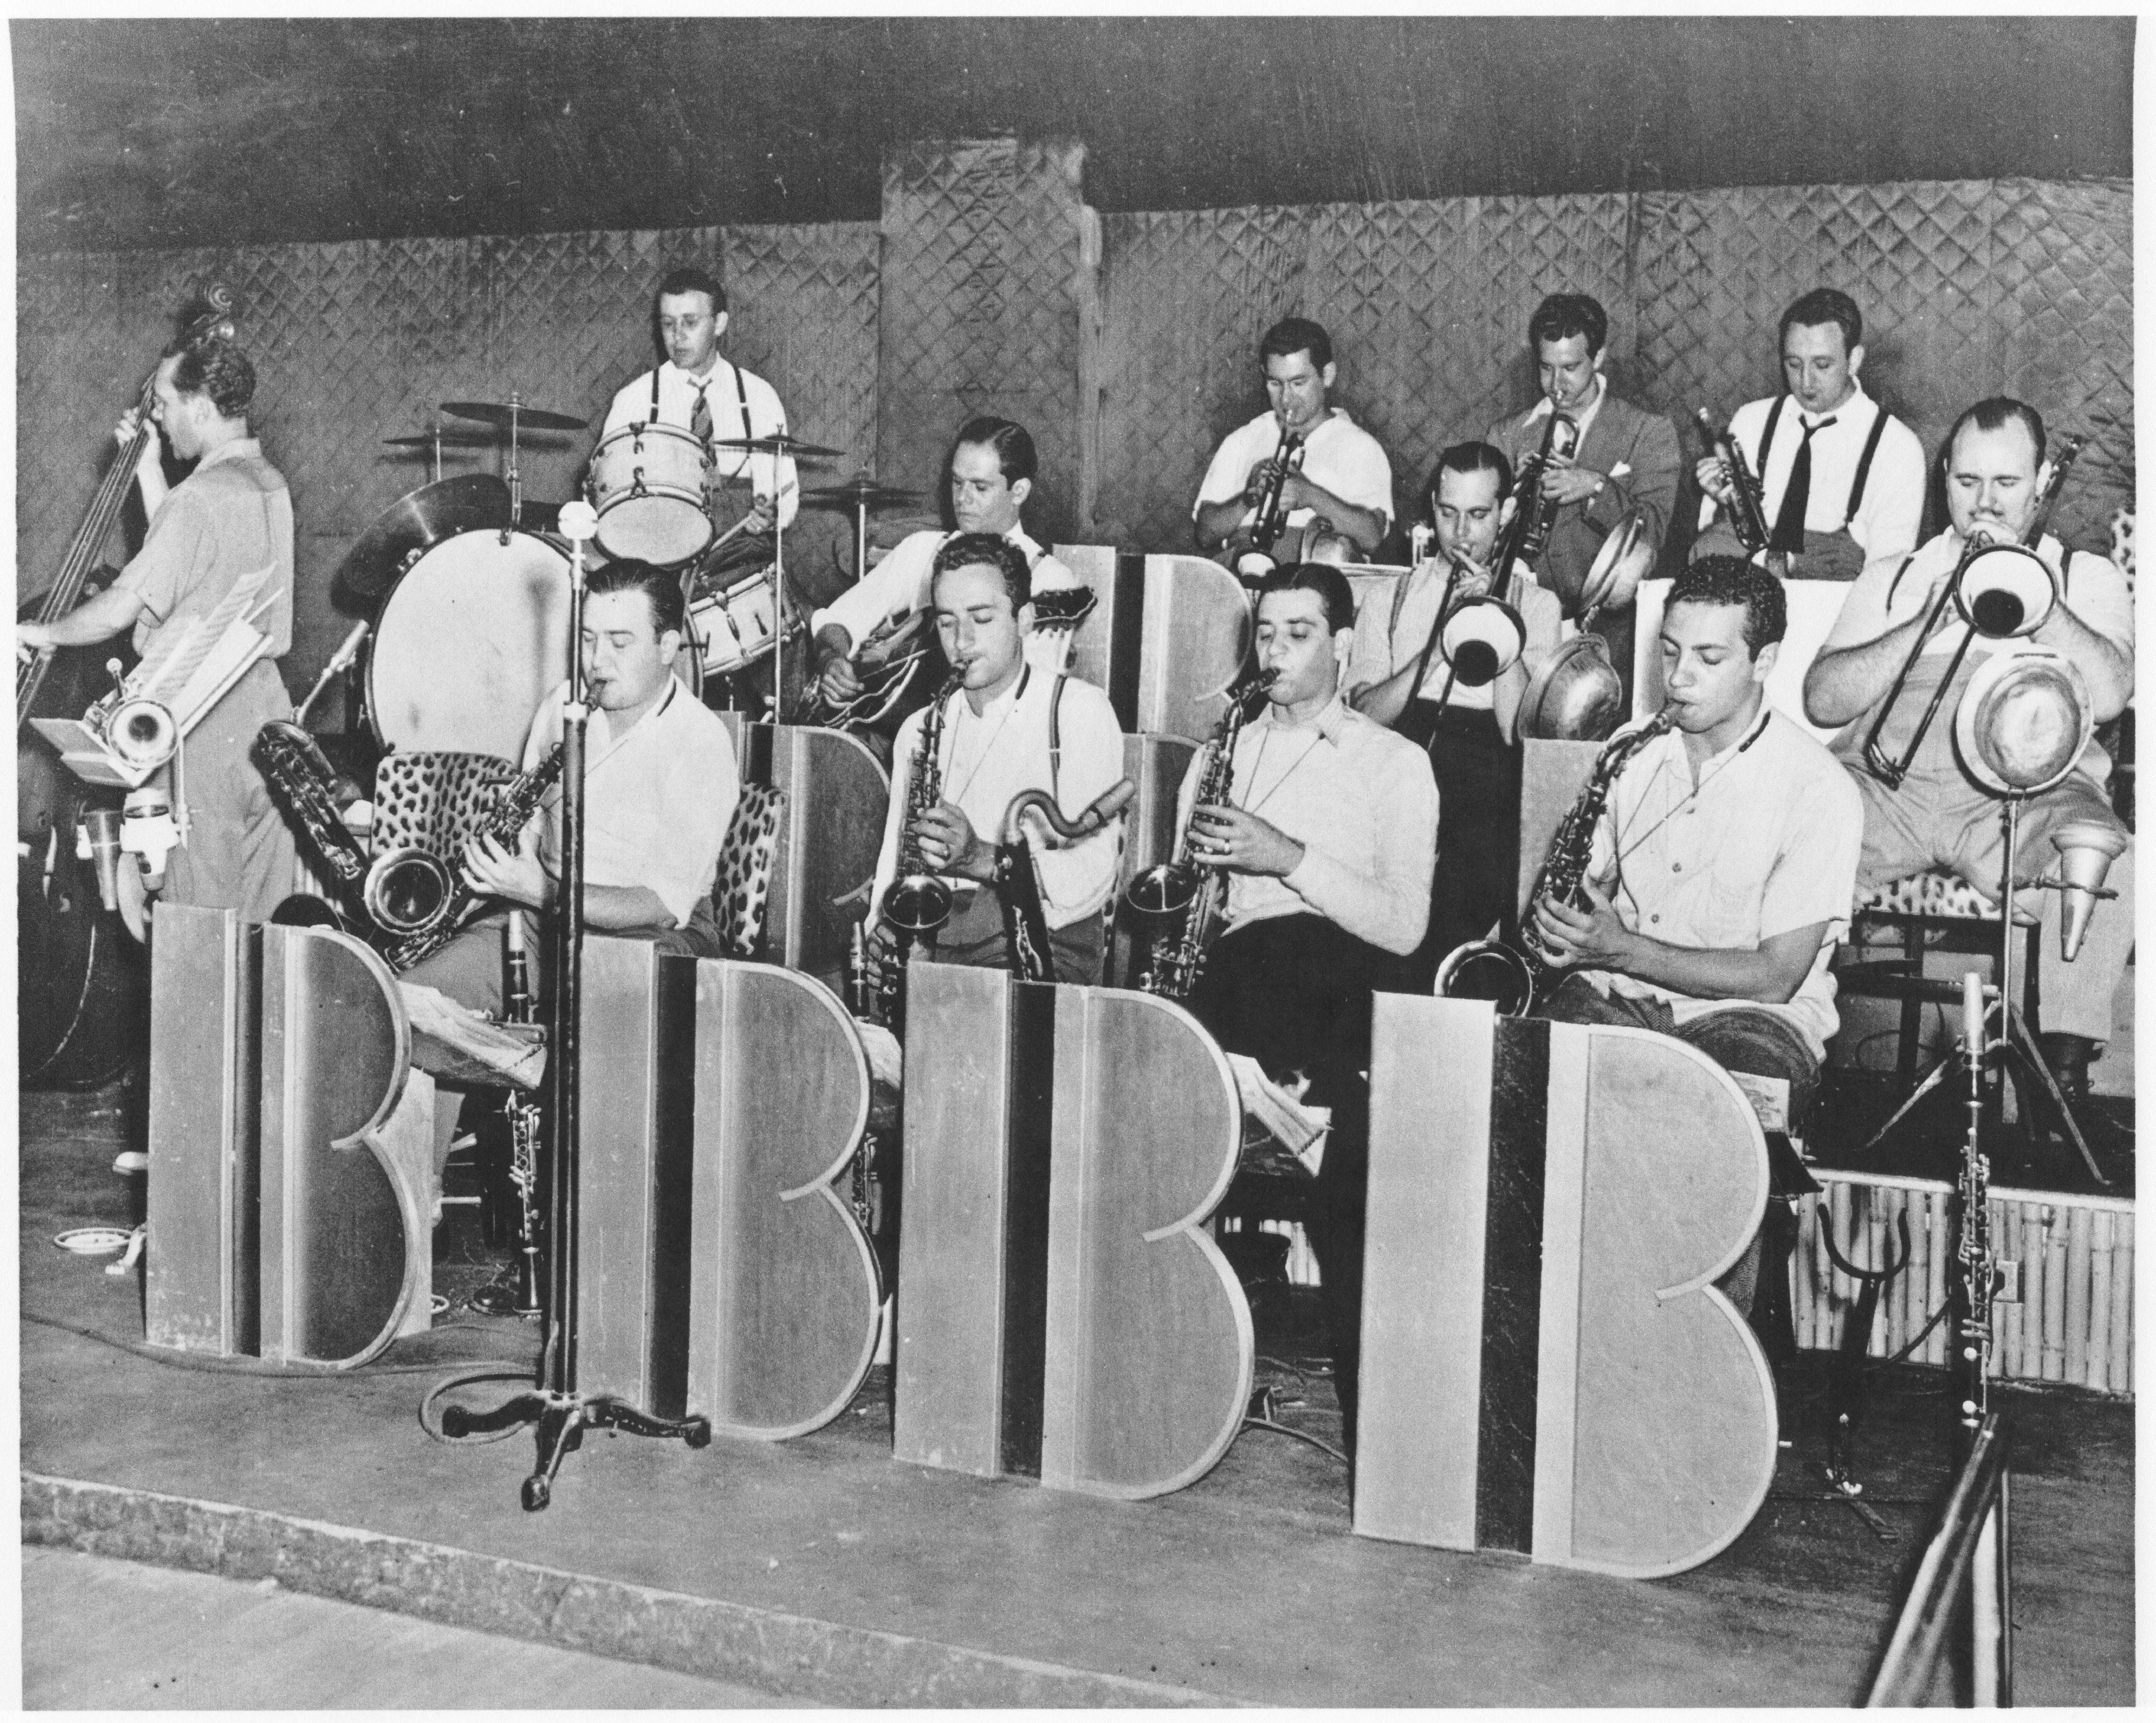 The Berigan band in rehearsal at Chicago's Sherman Hotel; July-August, 1939.